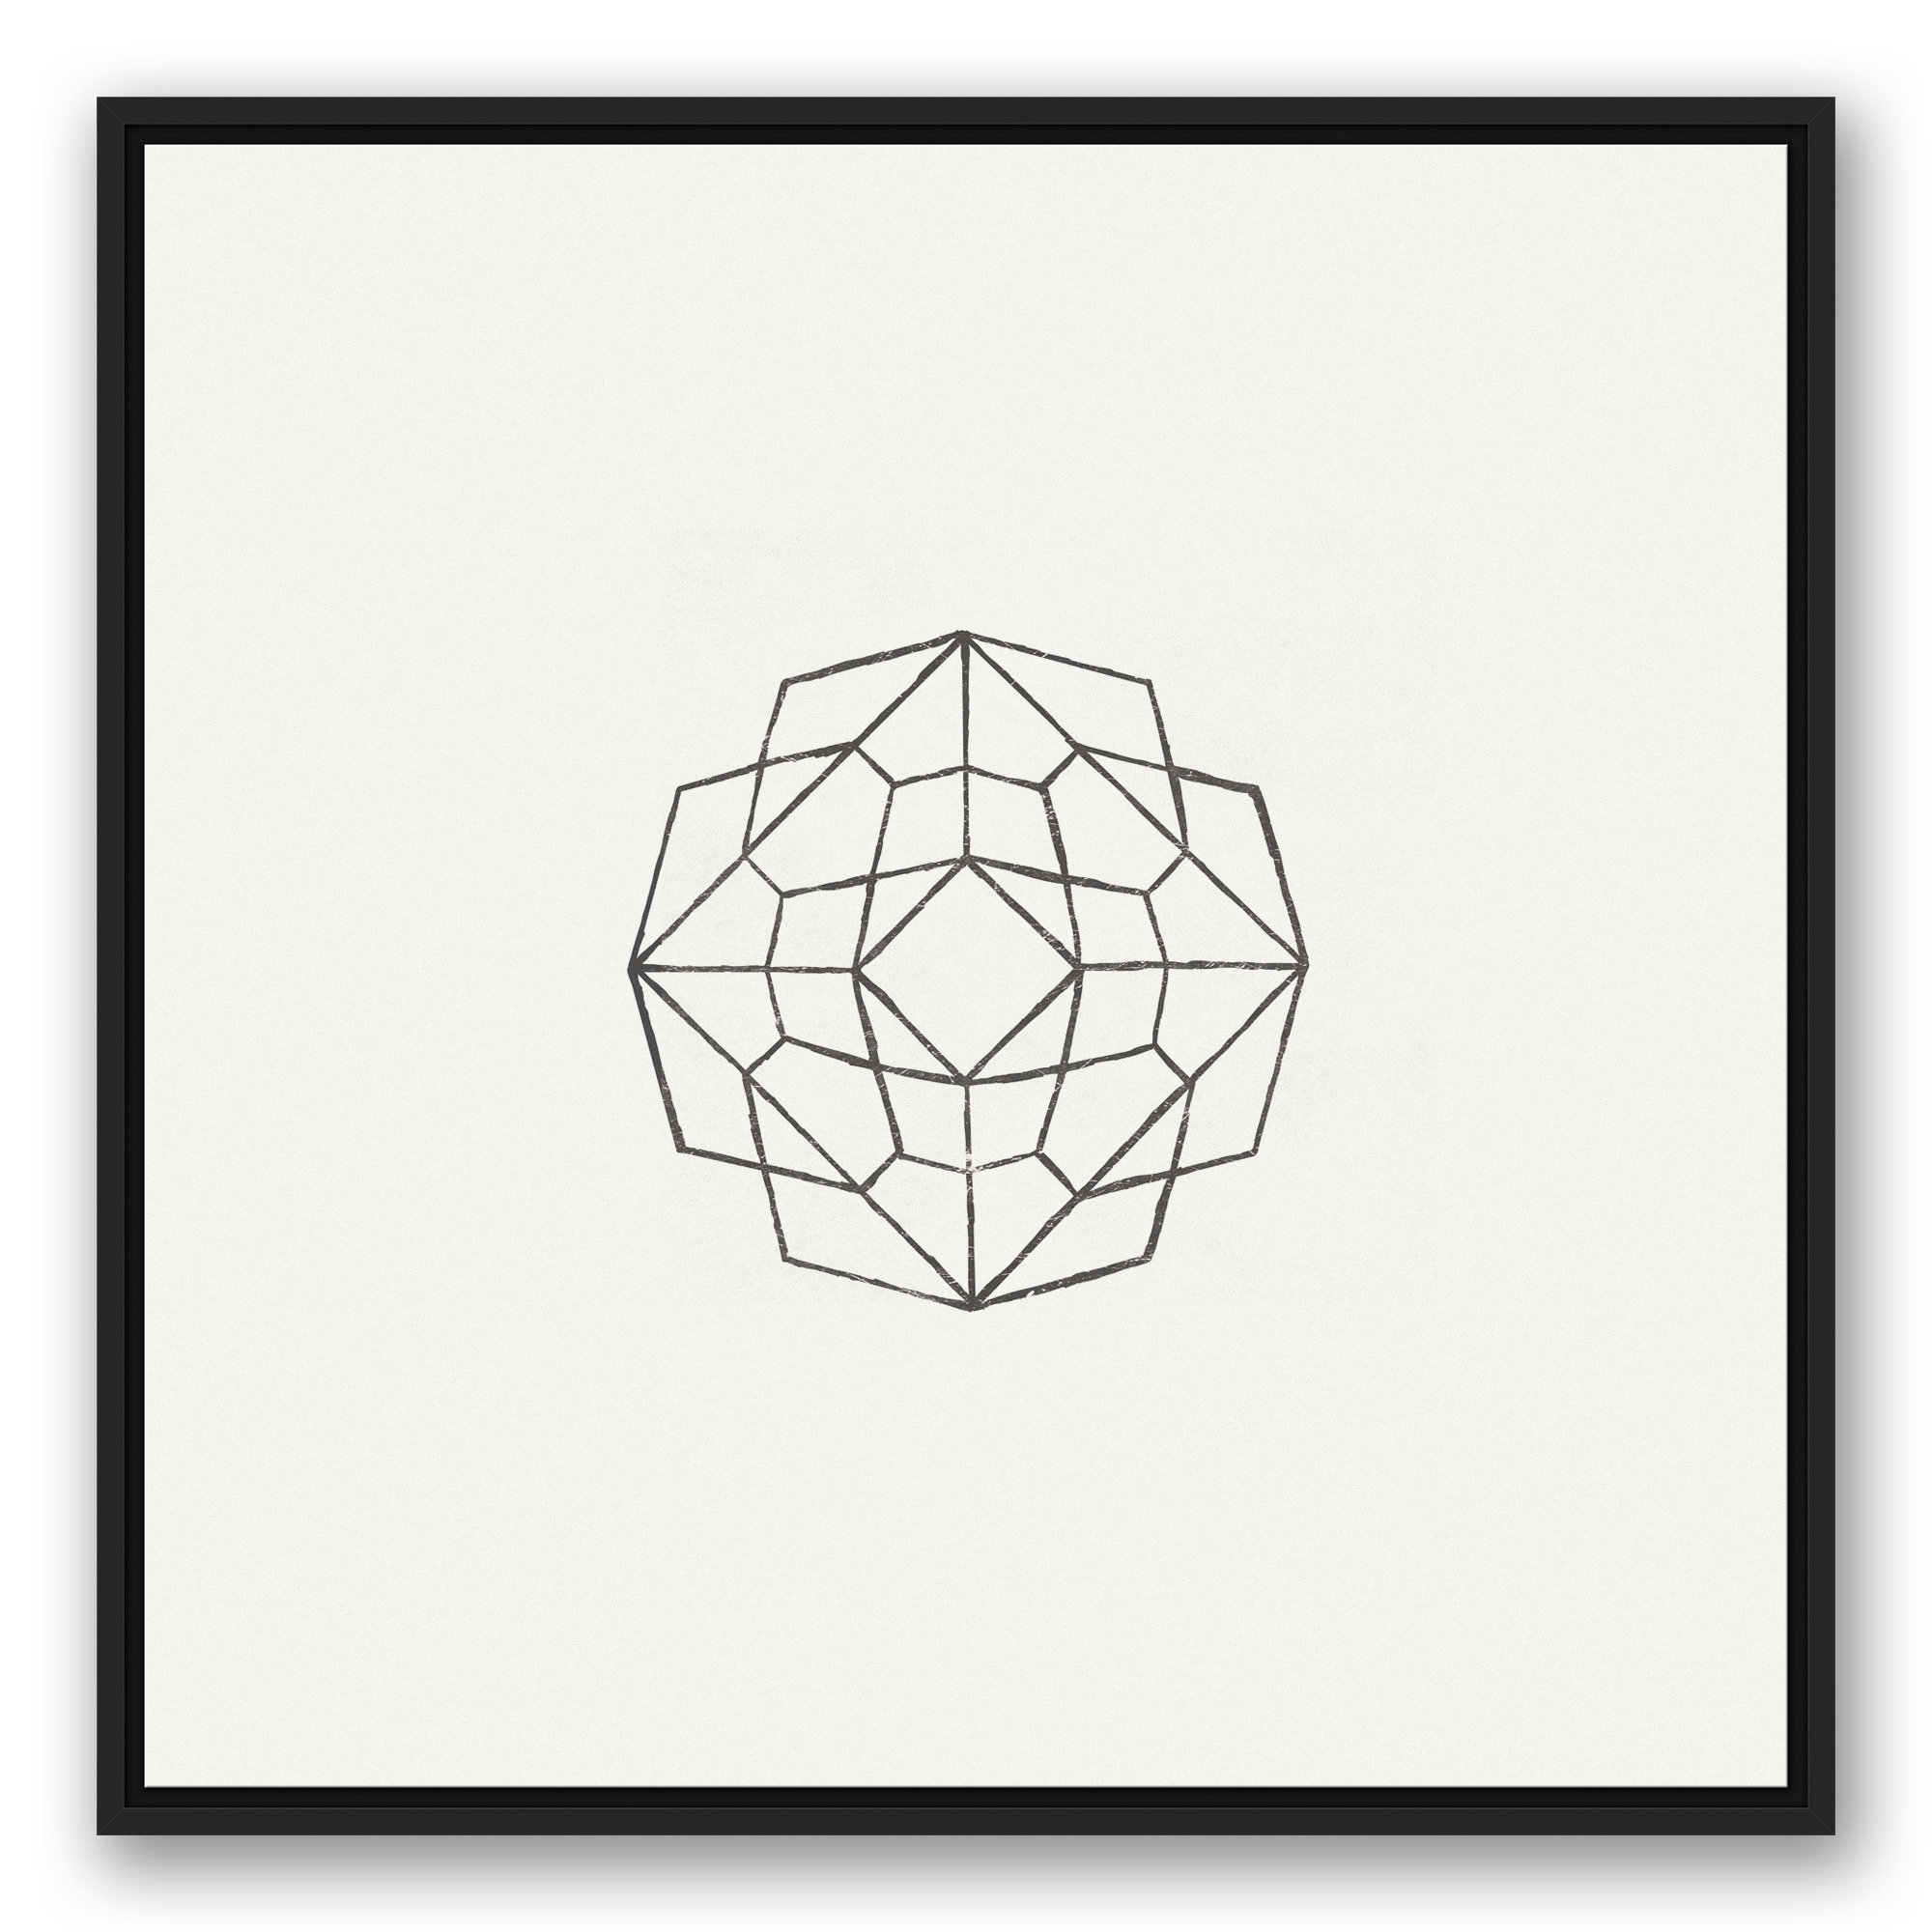 Wrought Studio 'geometric Sketch' Framed Graphic Art Print On Canvas Inside 2019 Rings Wall Decor By Wrought Studio (View 18 of 20)